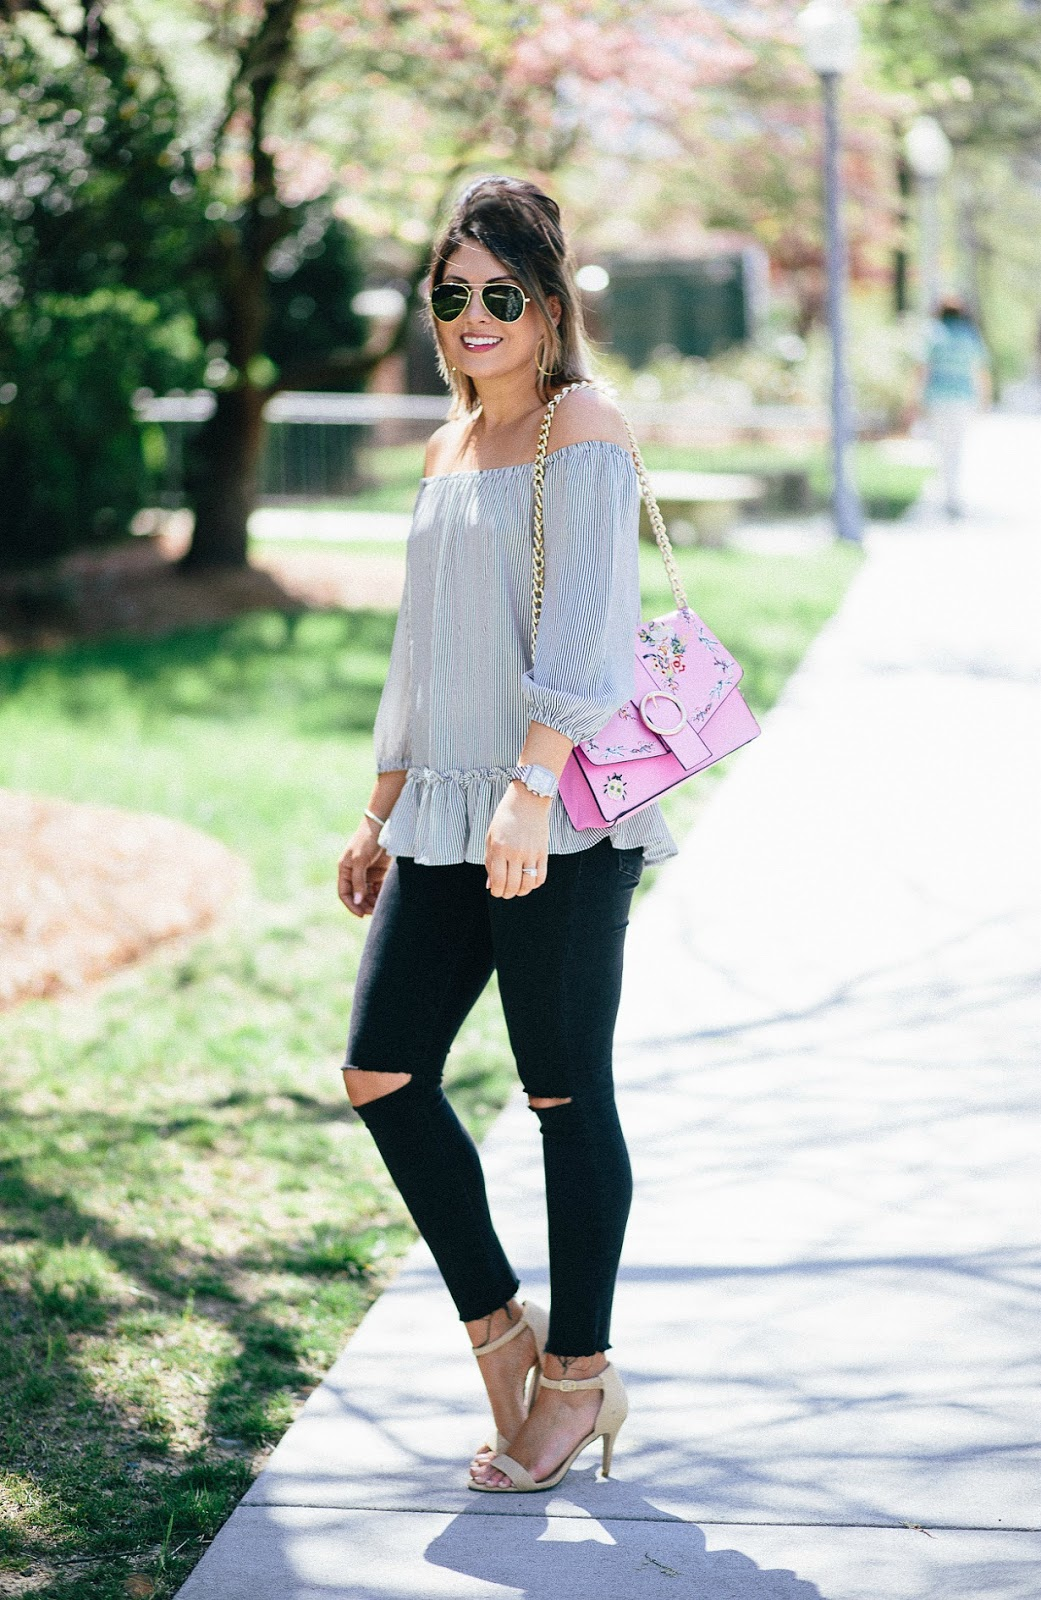 tj maxx top, ray ban aviators, striped ruffle off the shoulder top